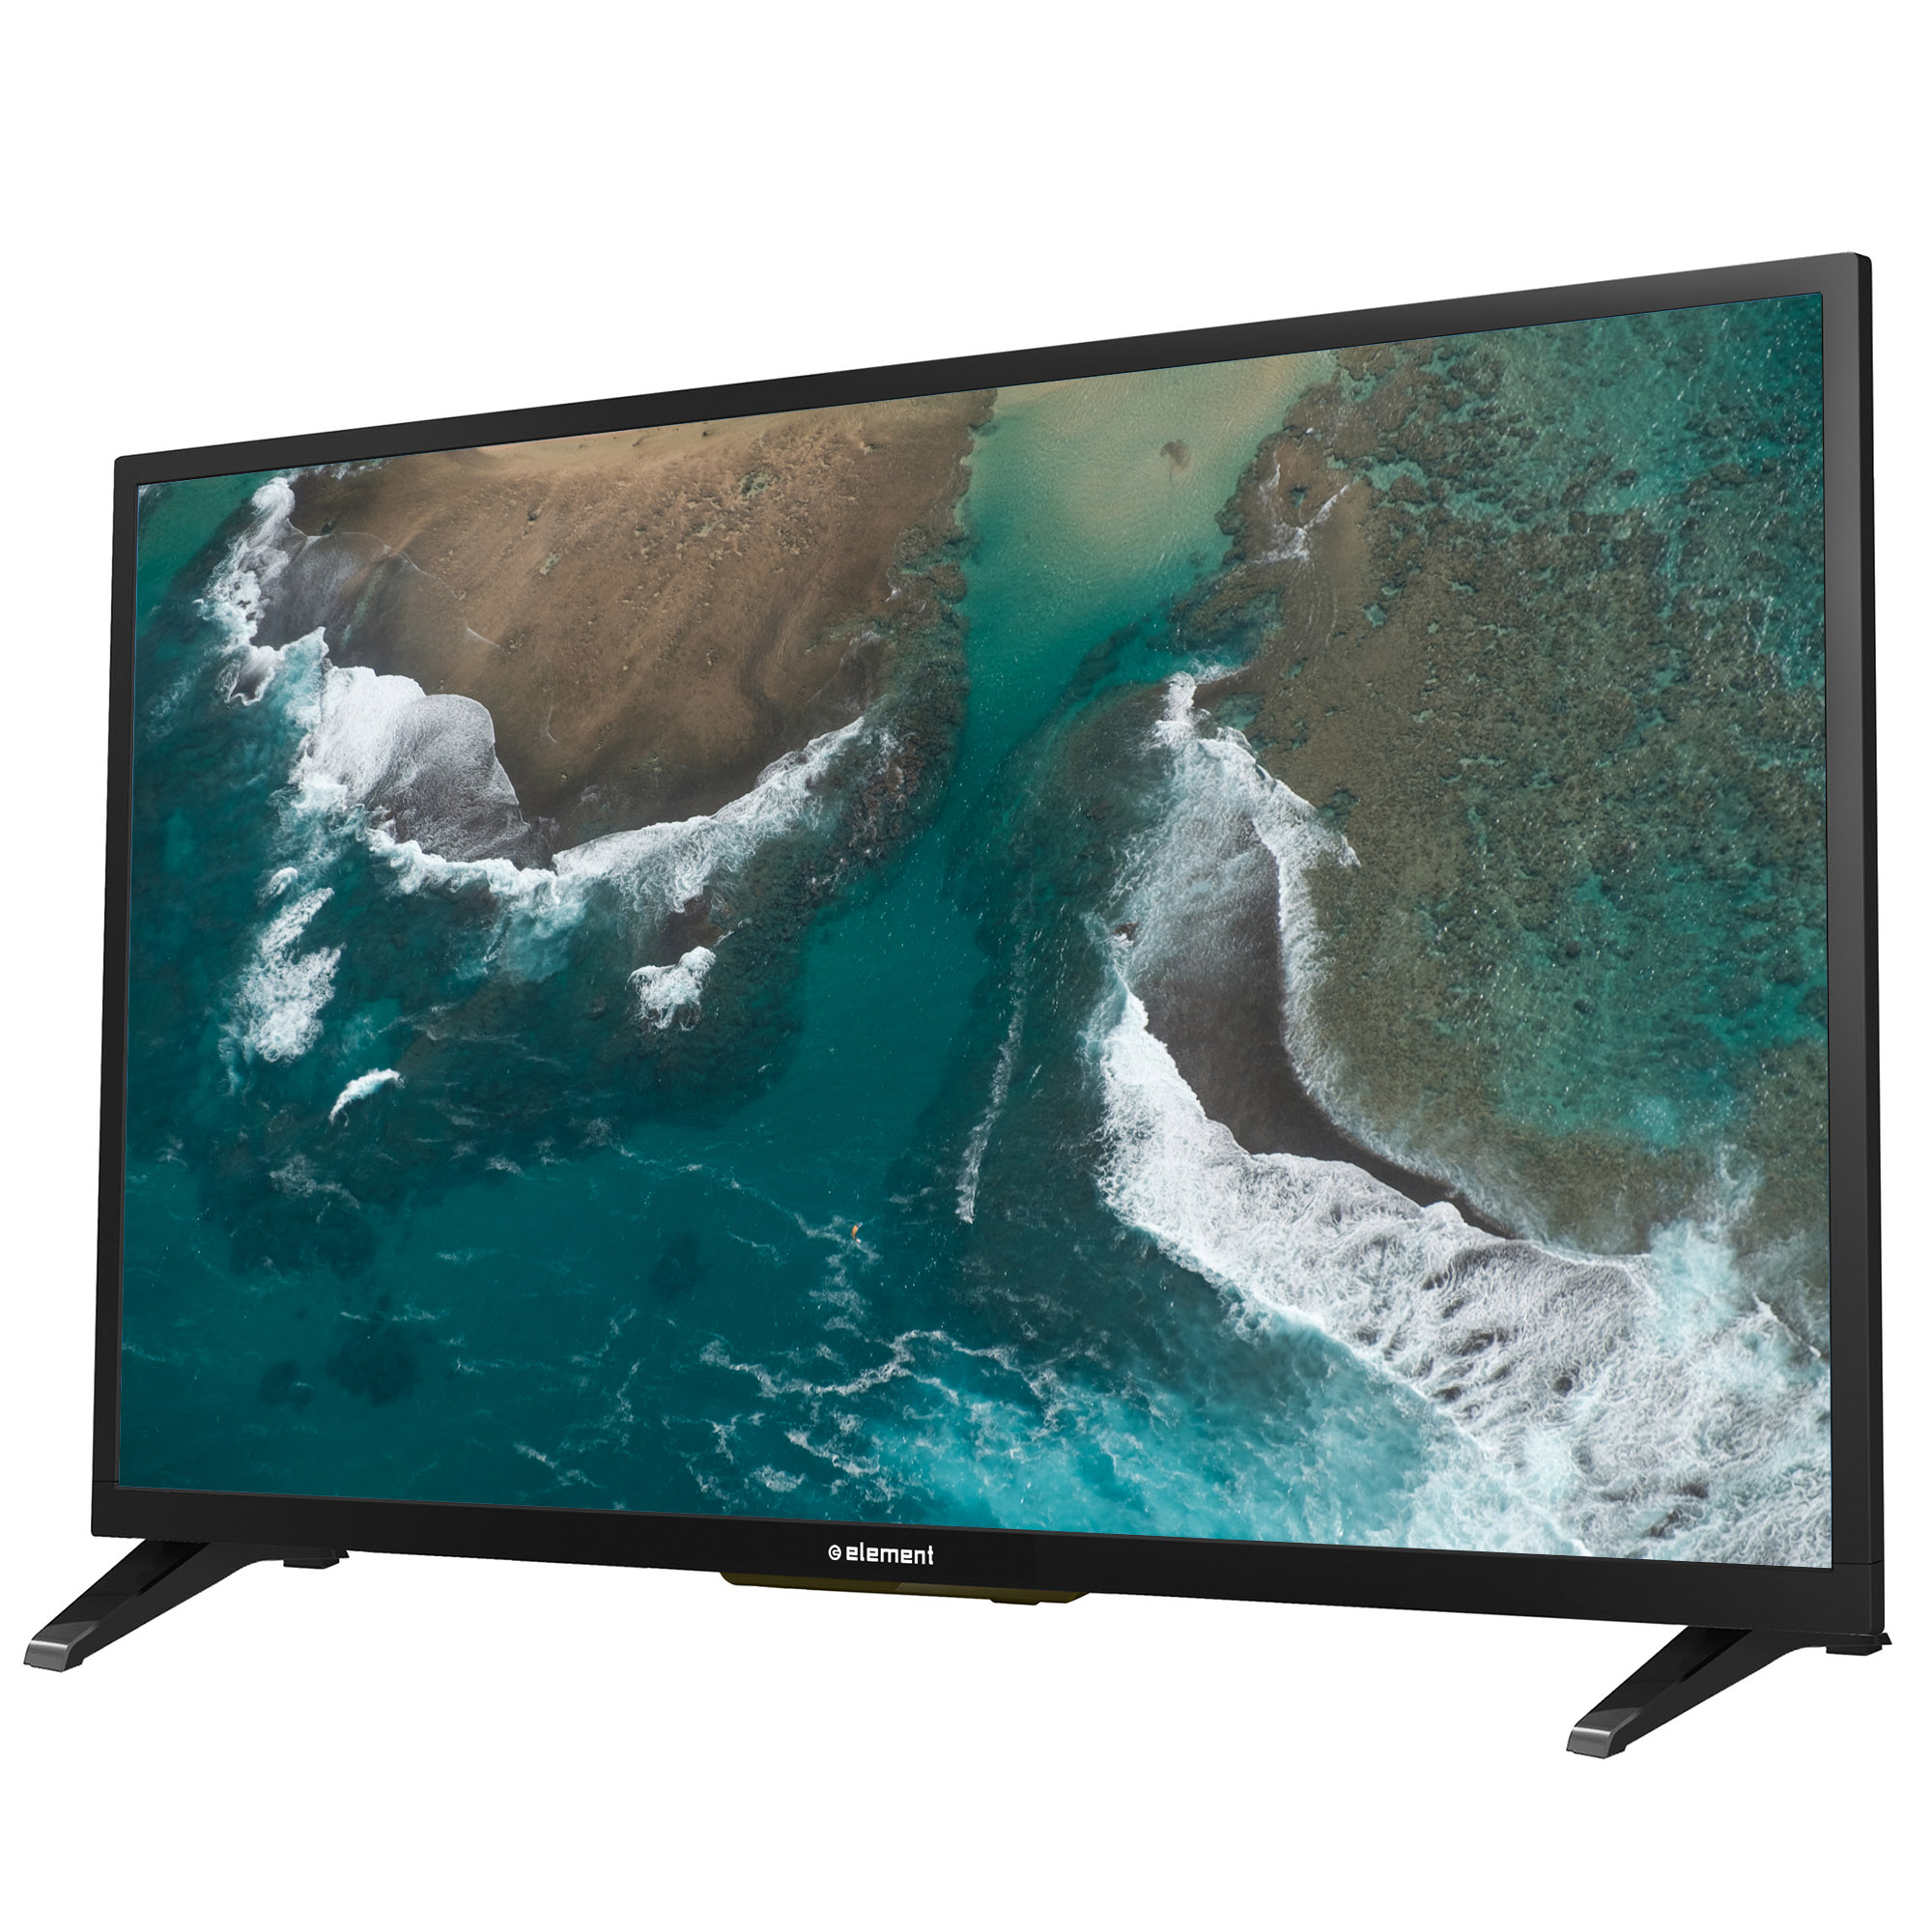 "ELEMENT 32"" Class (720P) LED HDTV (ELEFW328) - Walmart.com"